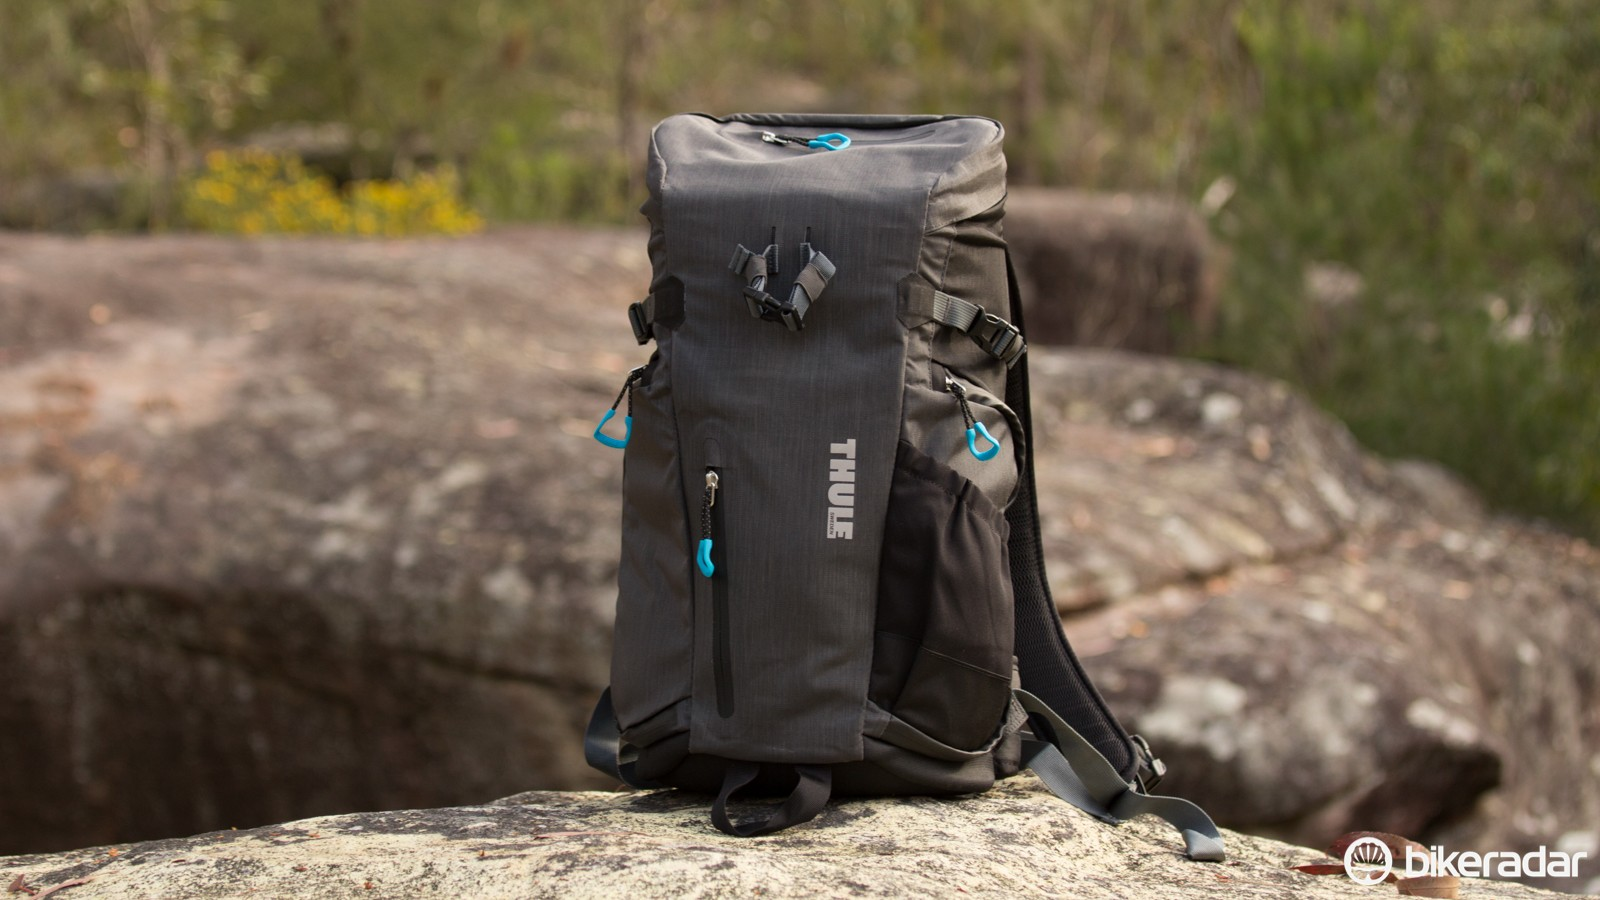 The Thule Perspektiv Daypack - for camera enthusiasts looking to travel light